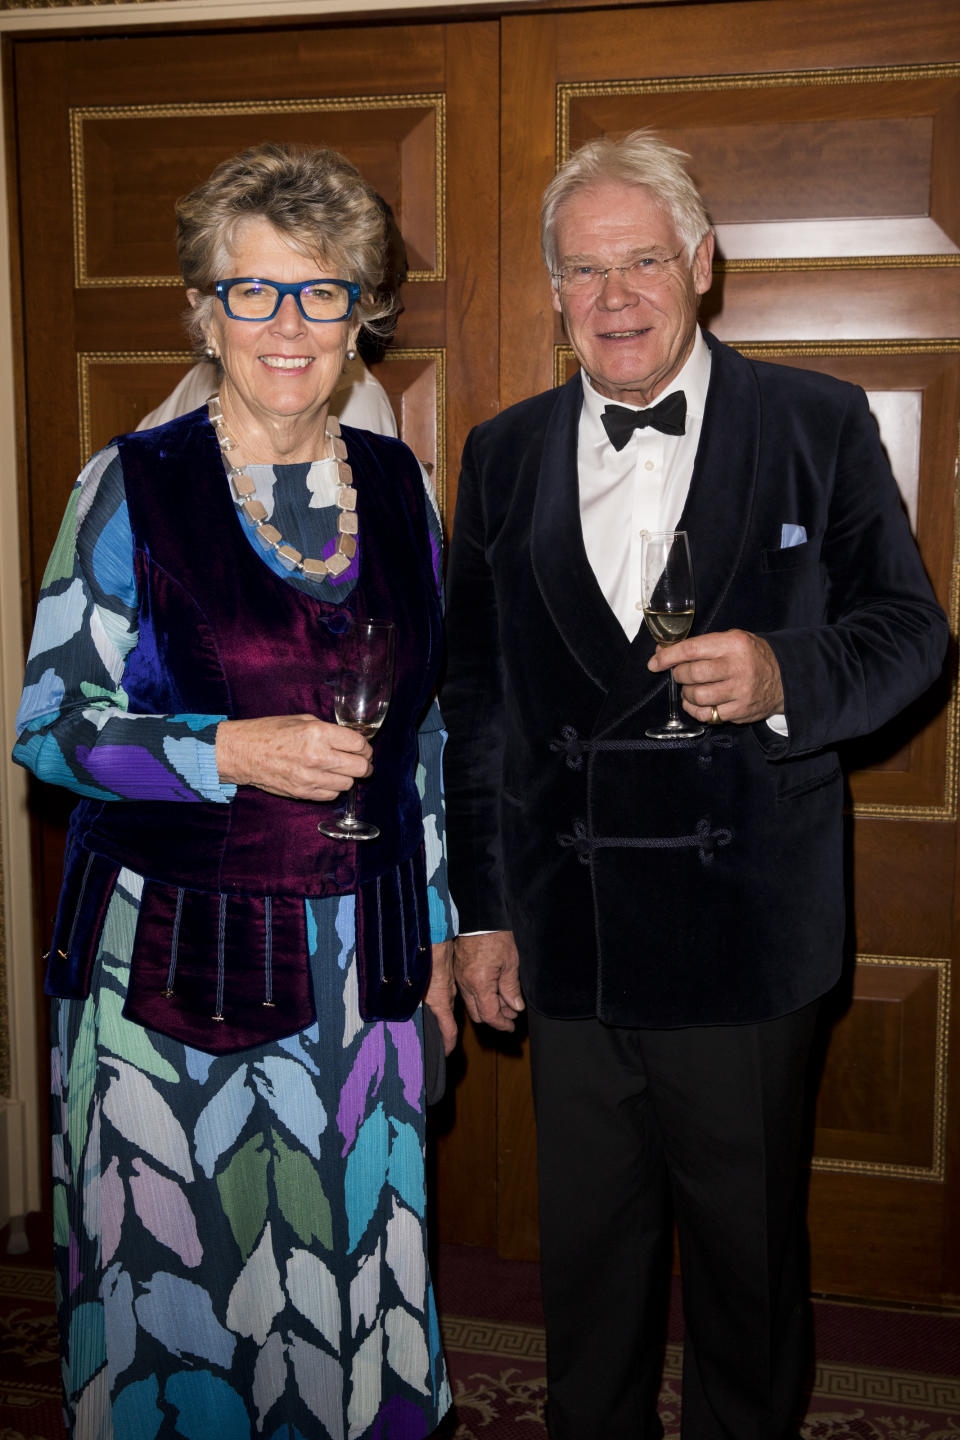 Prue Leith with her husband John Playfair as they attend a reception to mark The National Literacy Trust's 25th anniversary at Plaisterers' Hall on March 21, 2018 in London, England.  (Photo by Tristan Fewings - WPA Pool/Getty Images)